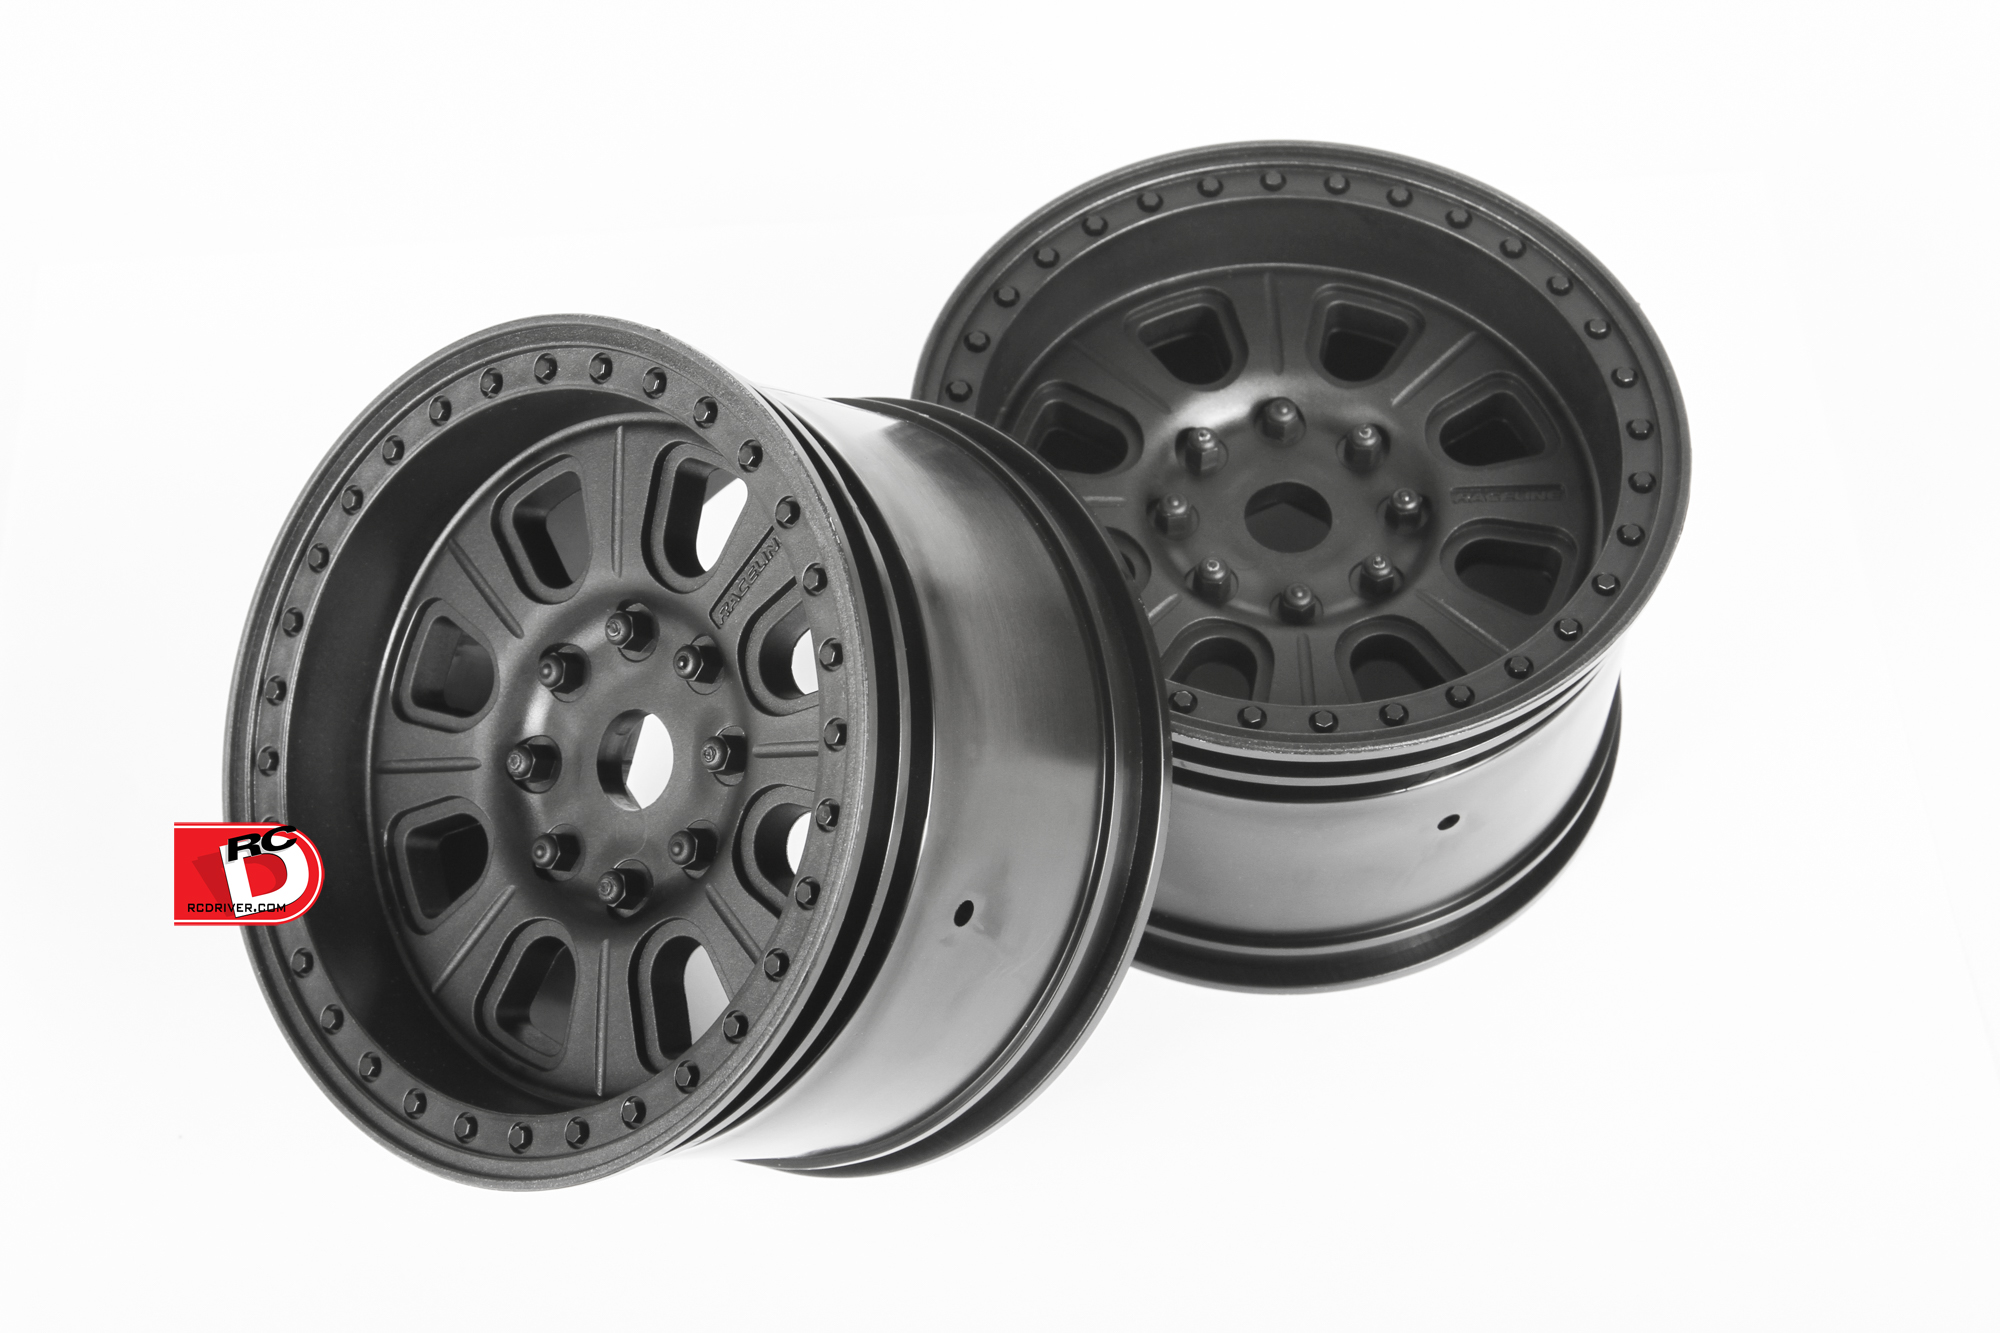 Axial Racing - 3.8 Raceline Monster Wheels